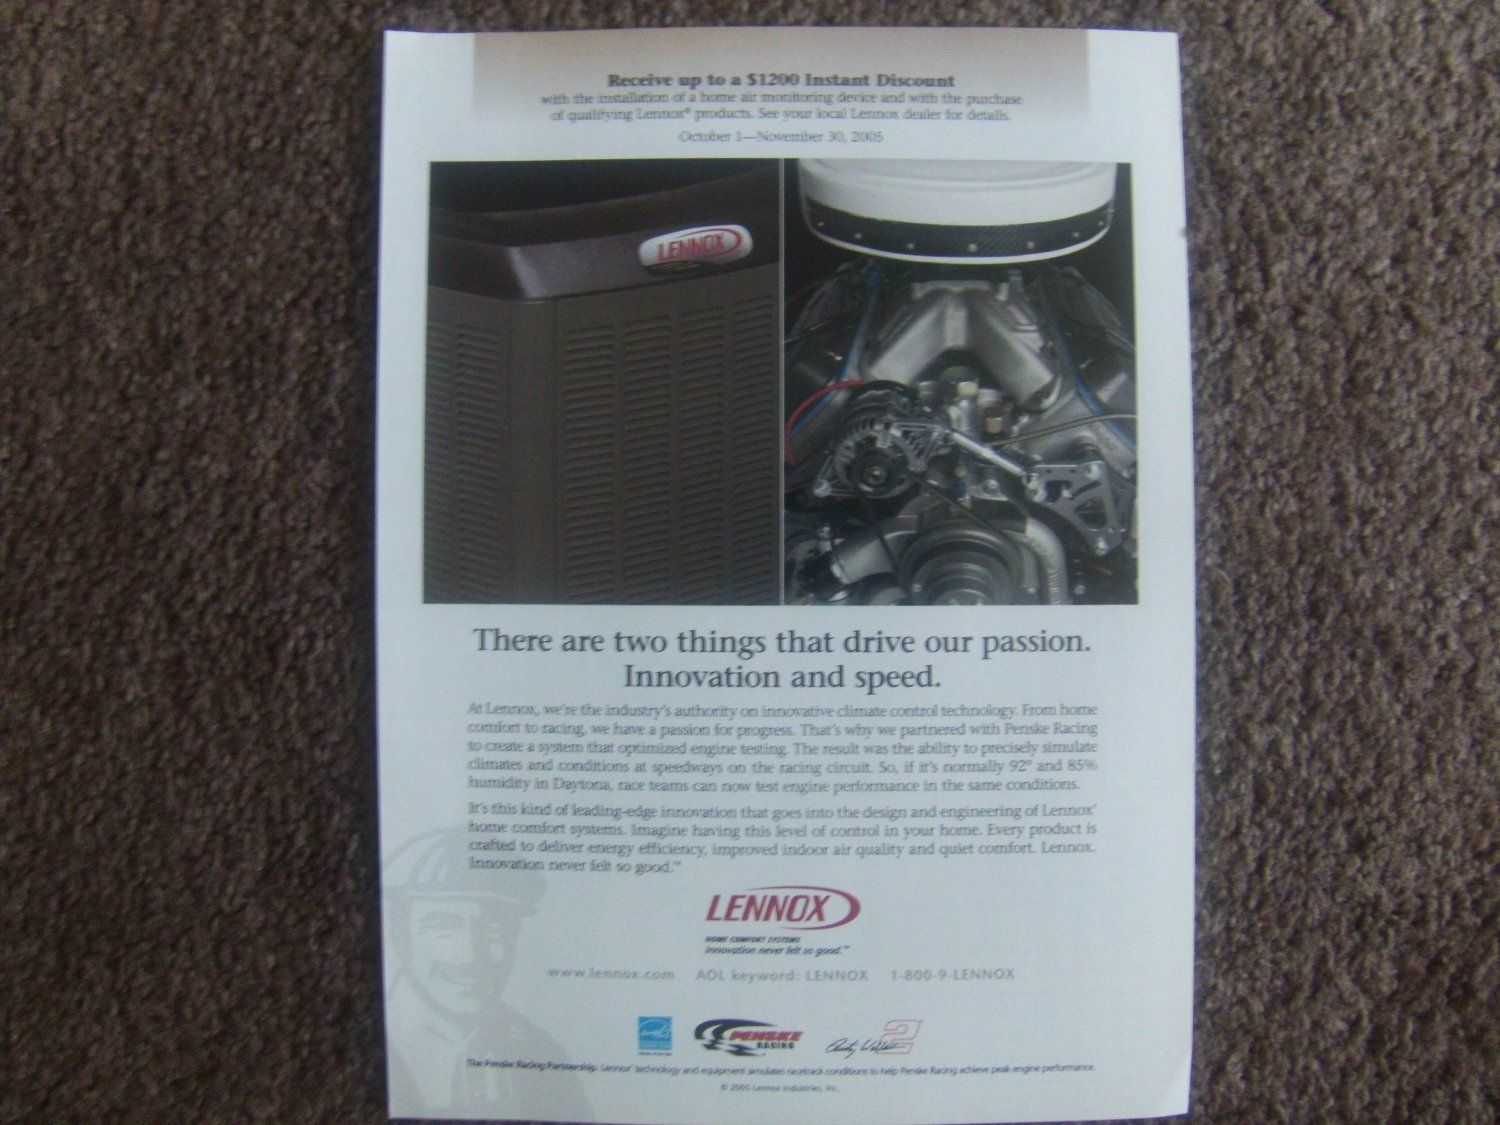 lennox home comfort system. lennox home comfort system magazine ad (rare) low internet price of $2.99 with the